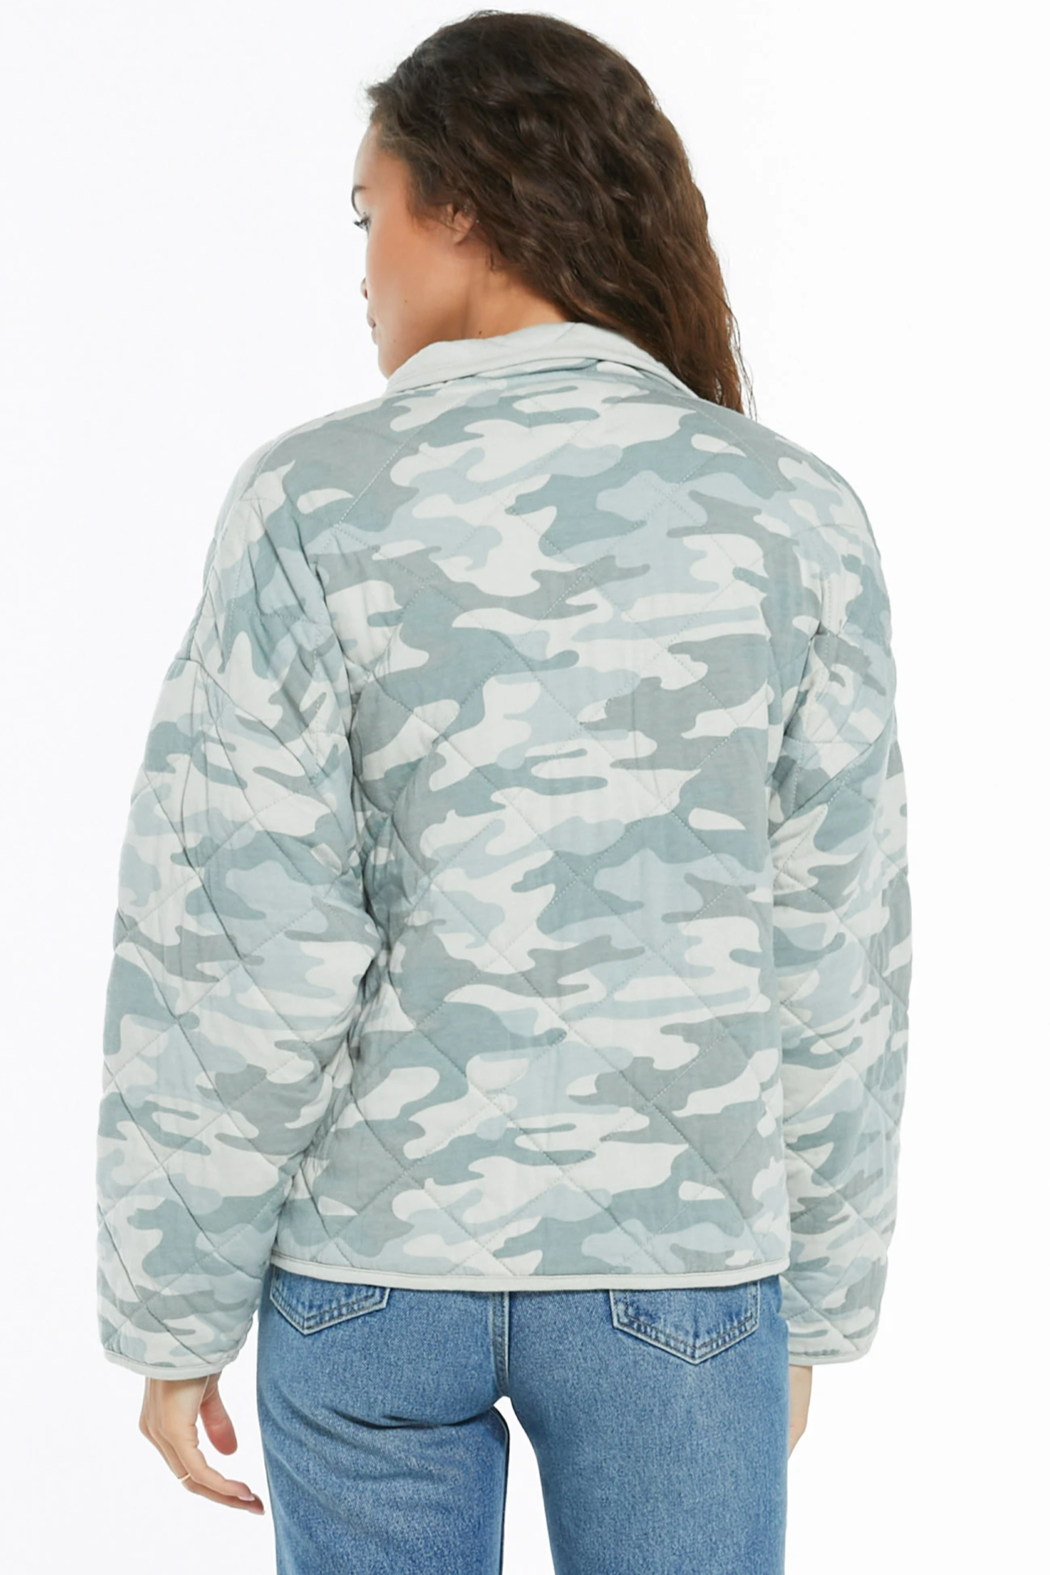 z supply Camo Quilted Jacket - Side Cropped Image